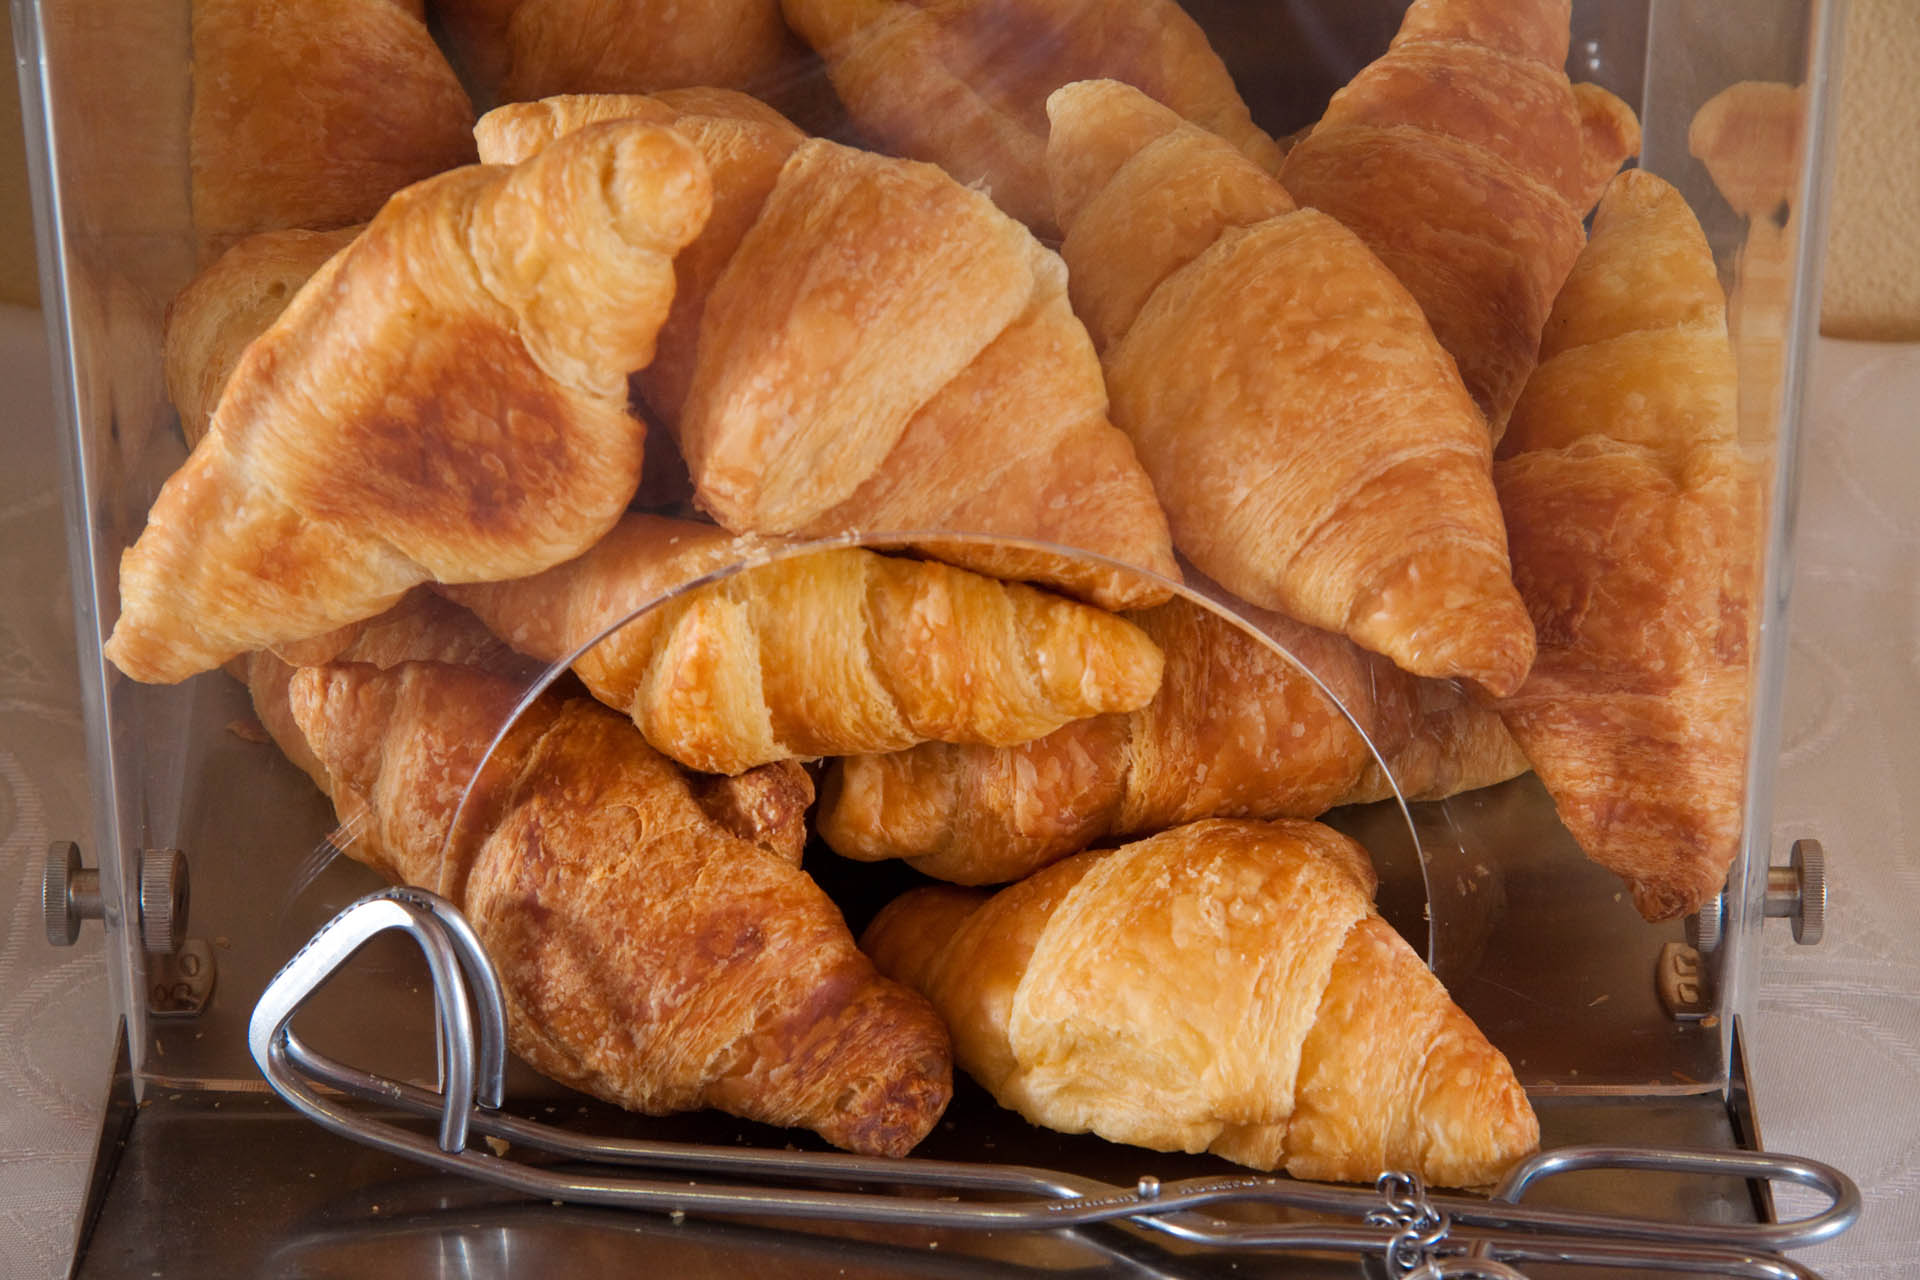 https://www.alkhotel.com/wp-content/uploads/2017/01/Croissants-at-Alkhotel-breakfast.jpg